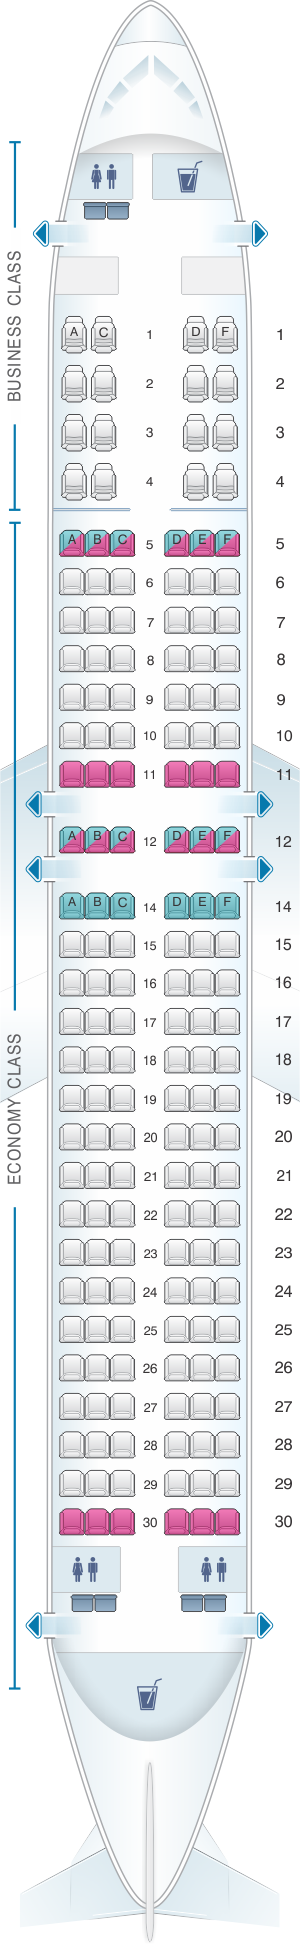 Seat map for Malaysia Airlines Boeing B737 800 166PAX